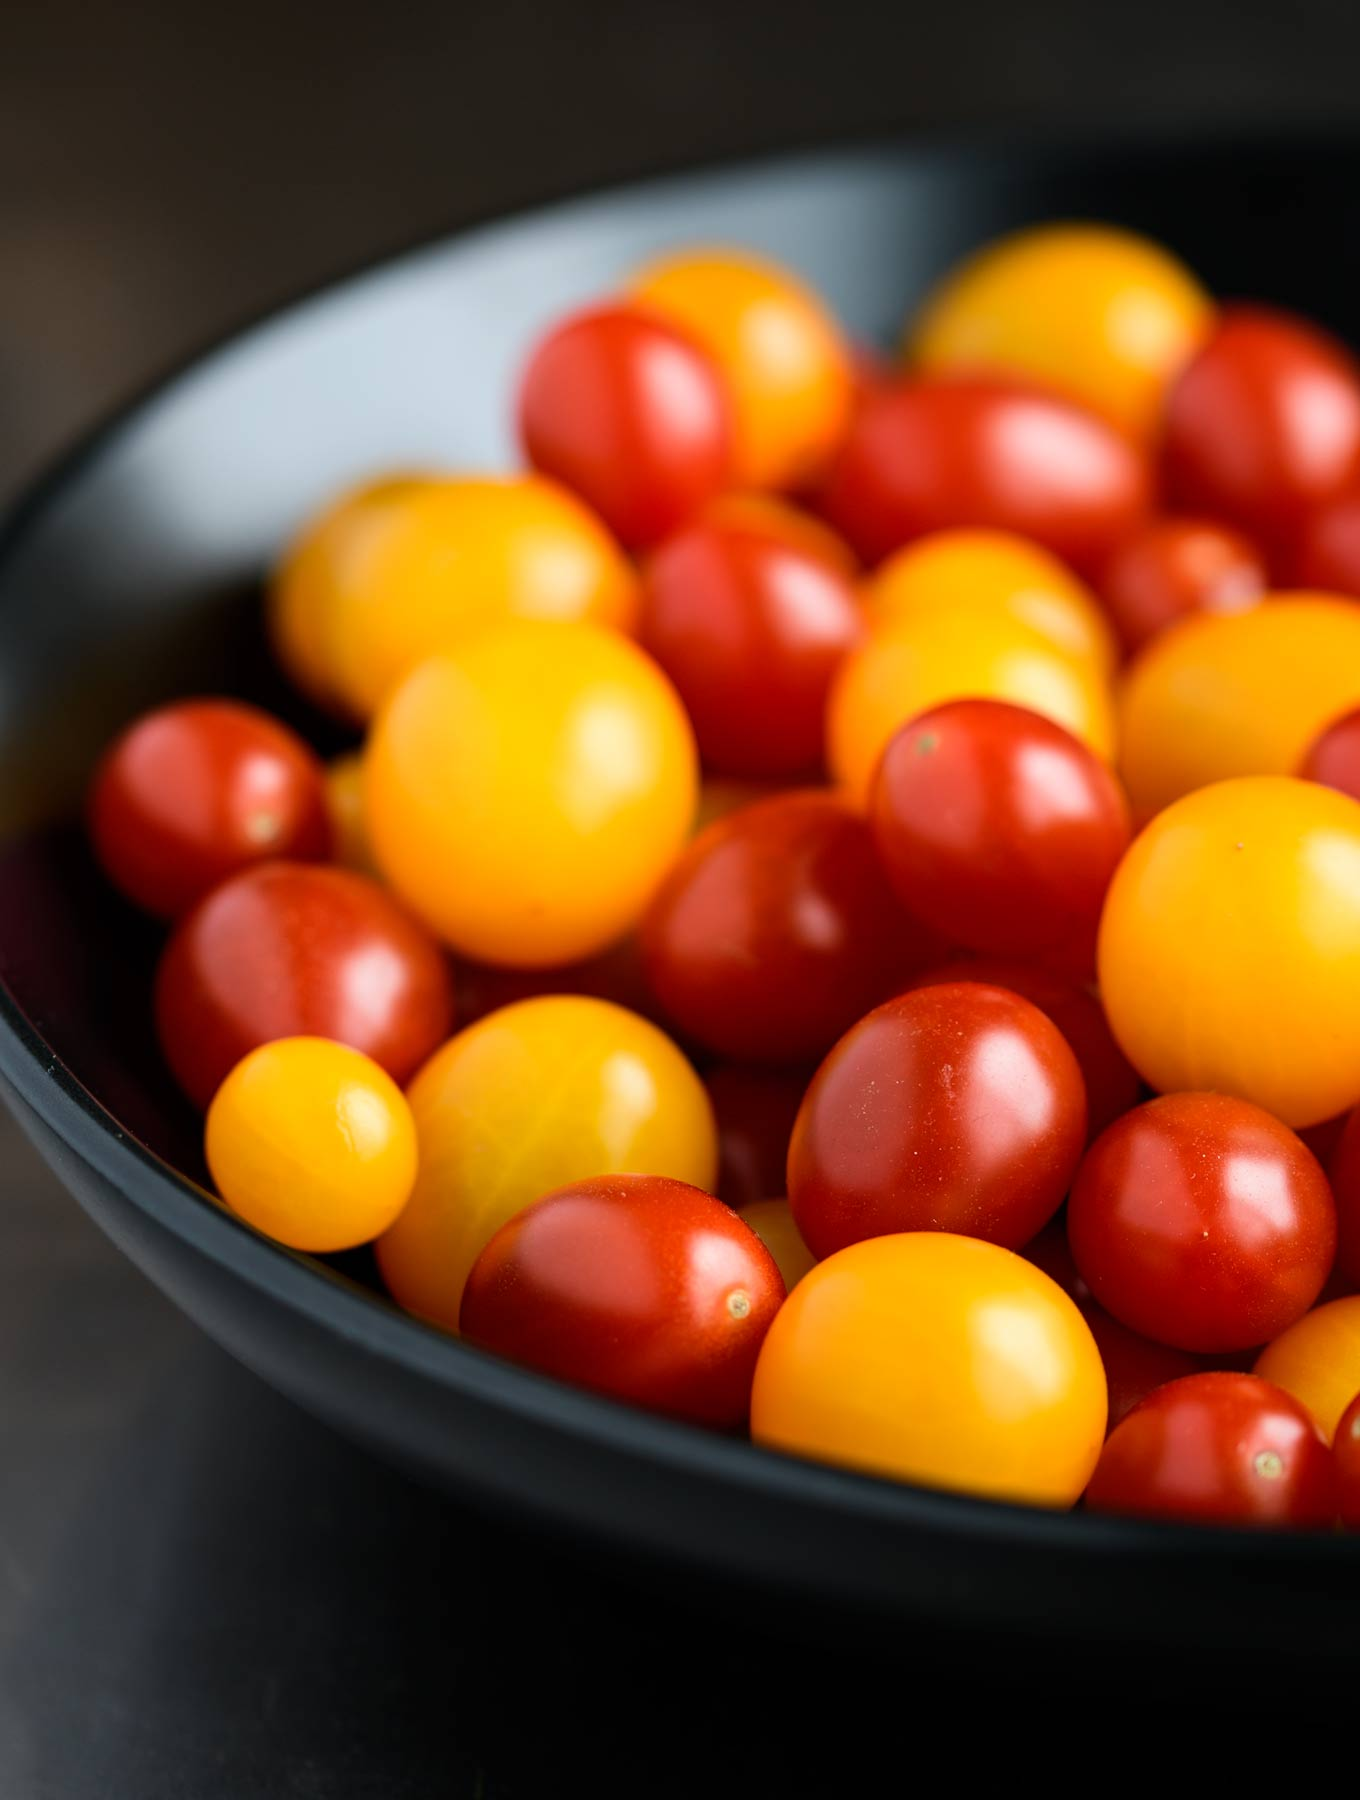 Bowl of yellow and red grape tomatoes